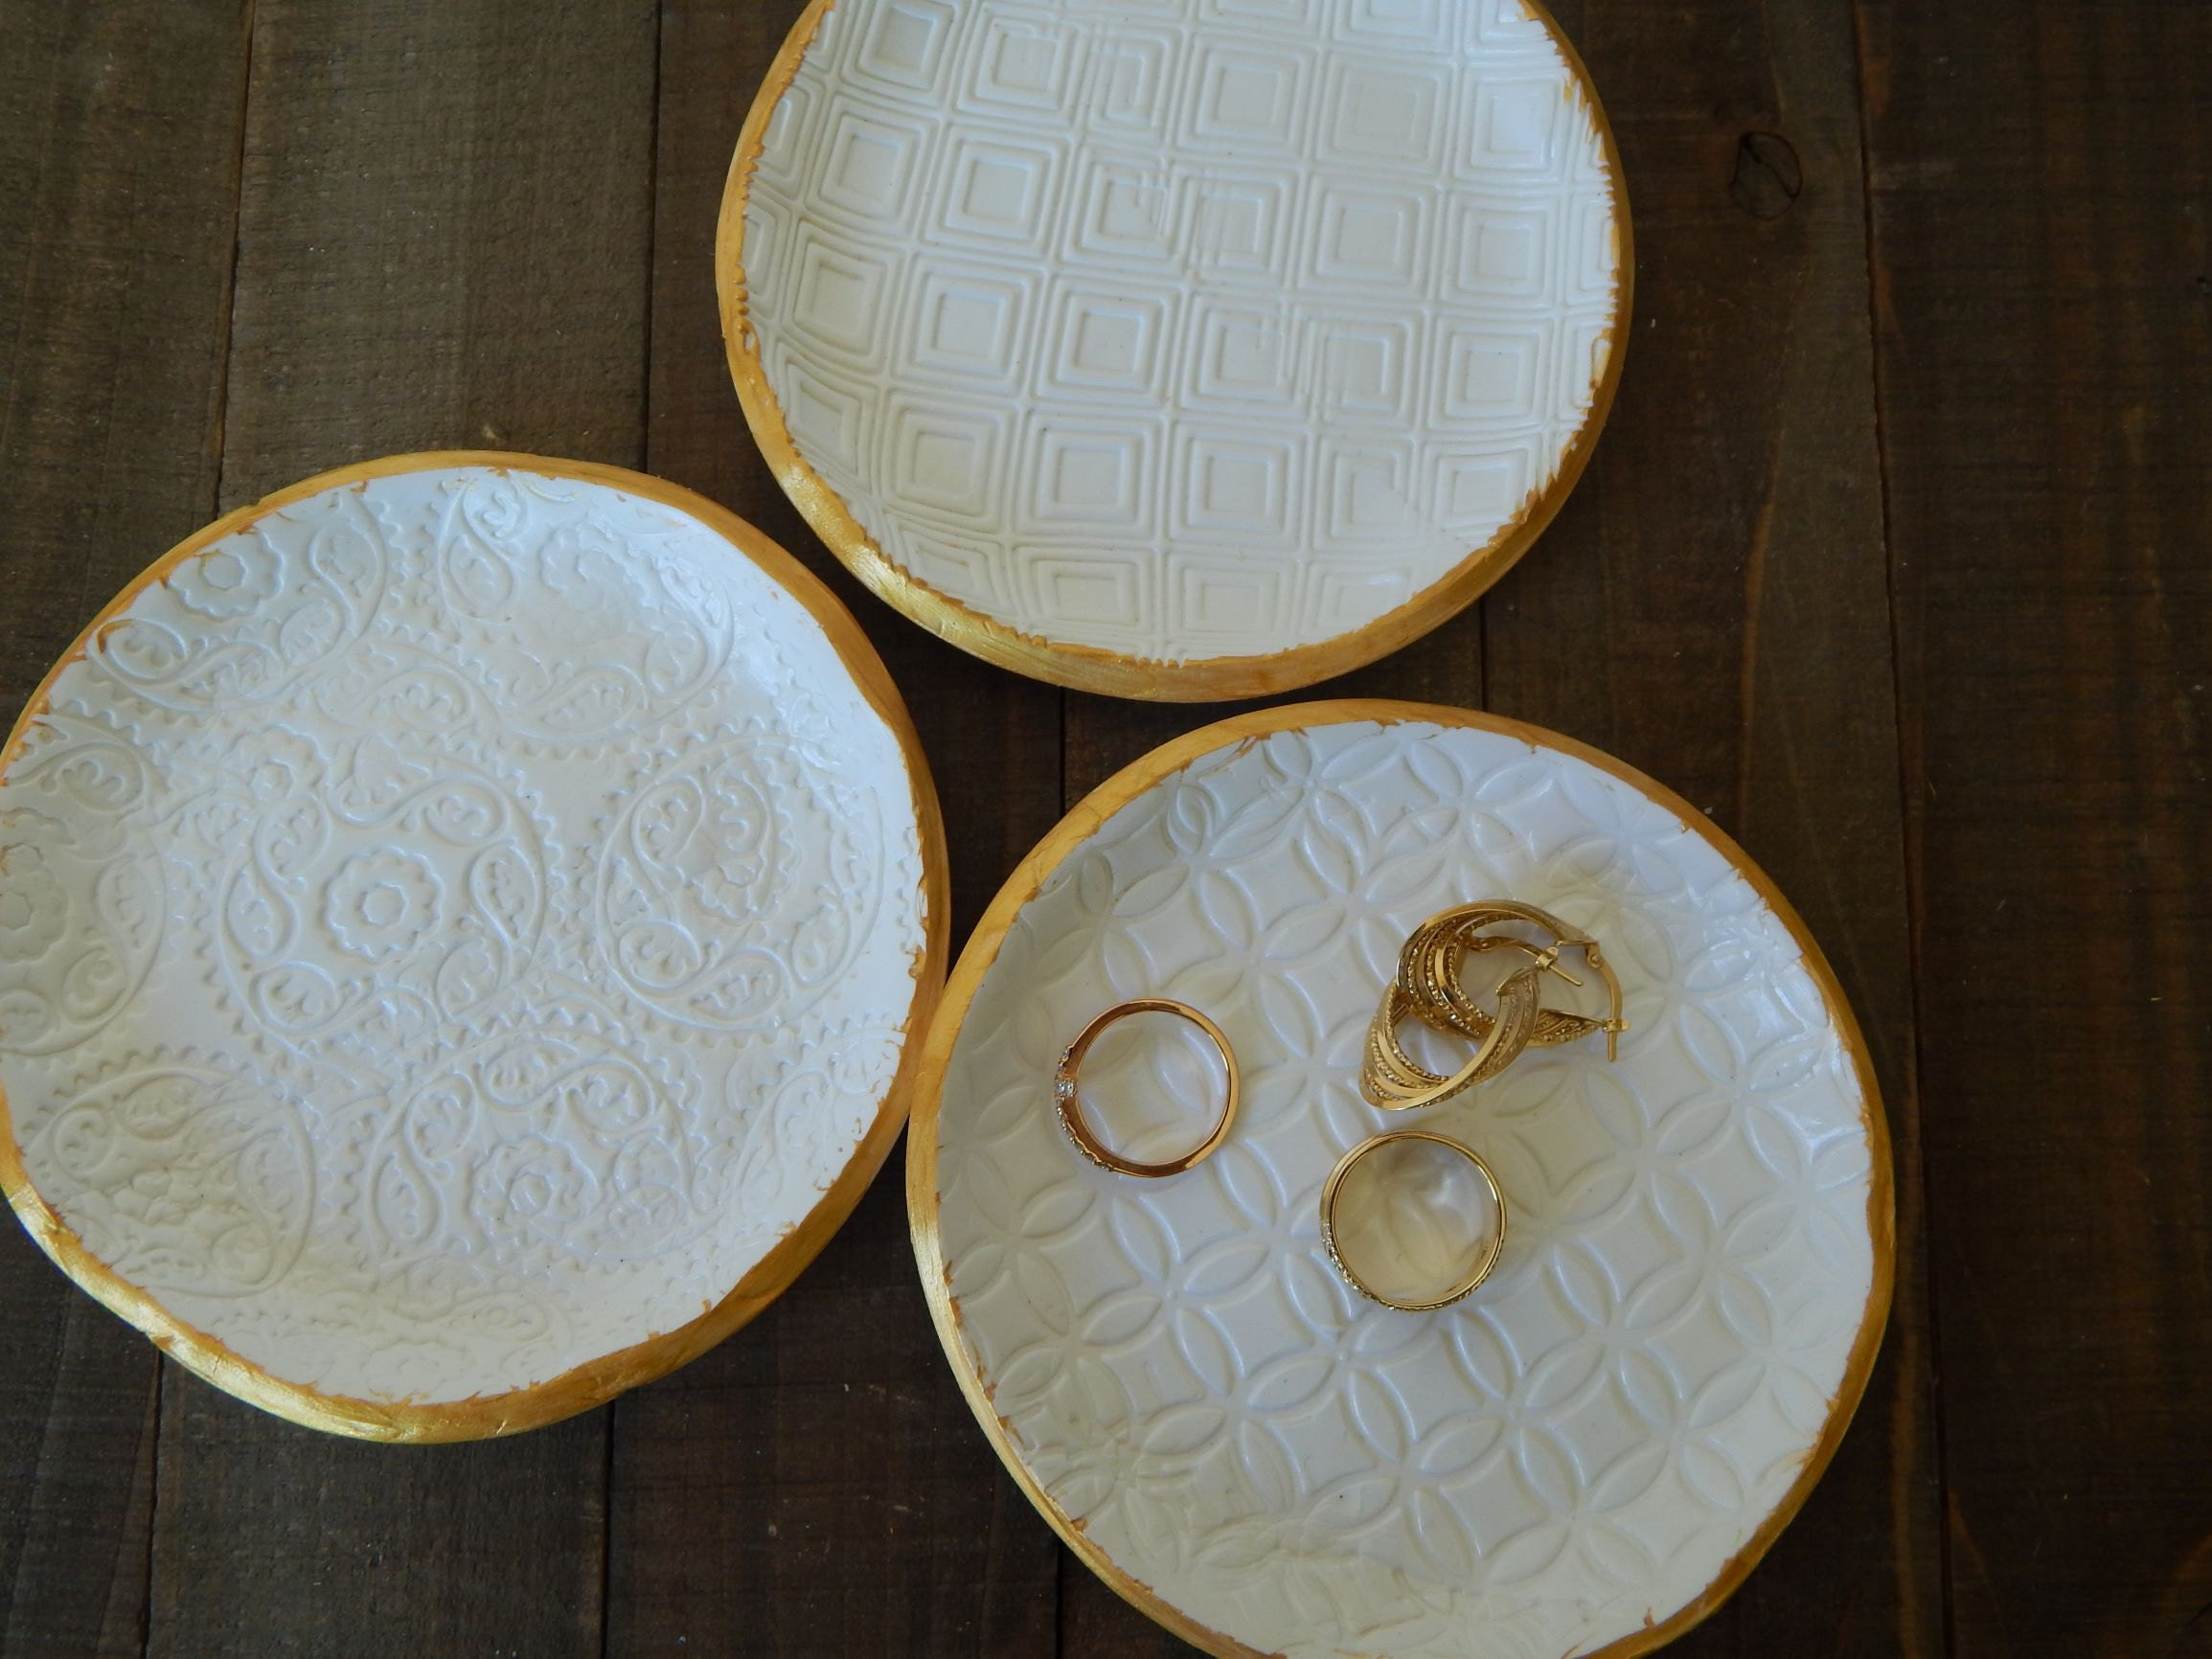 Adorable ring dishes to add to any room.